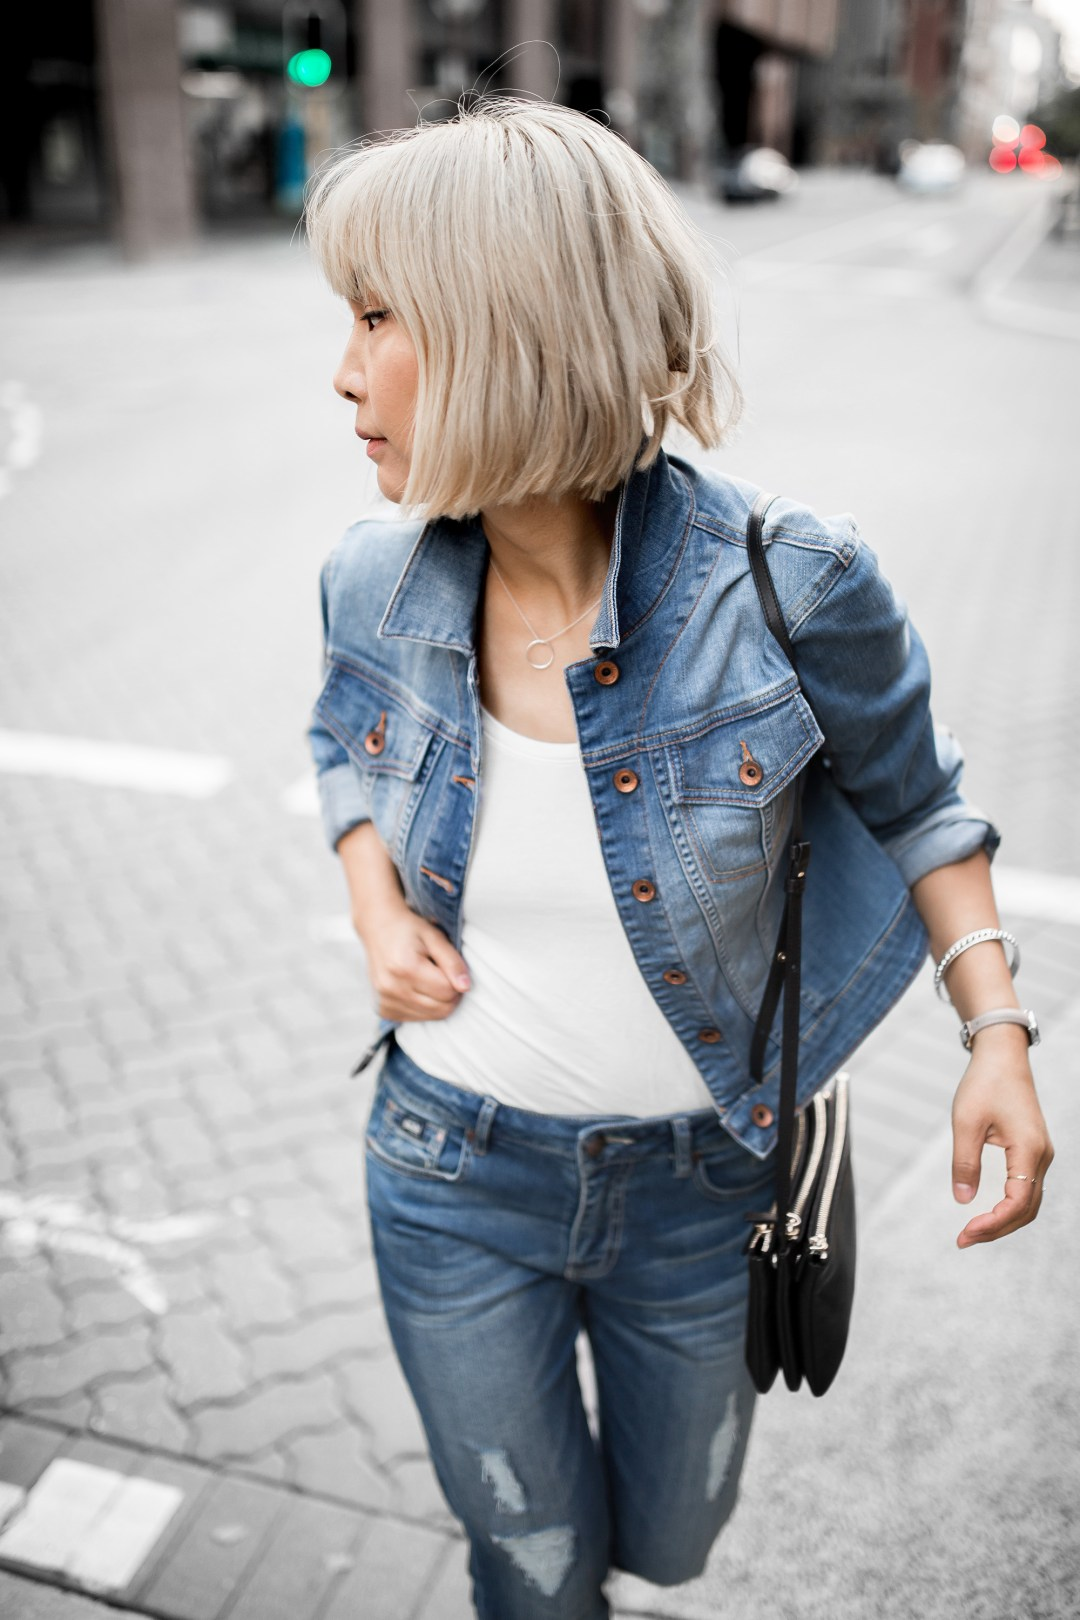 superdry-double-denim-boyfriend-jeans-denim-jacket-6-copy